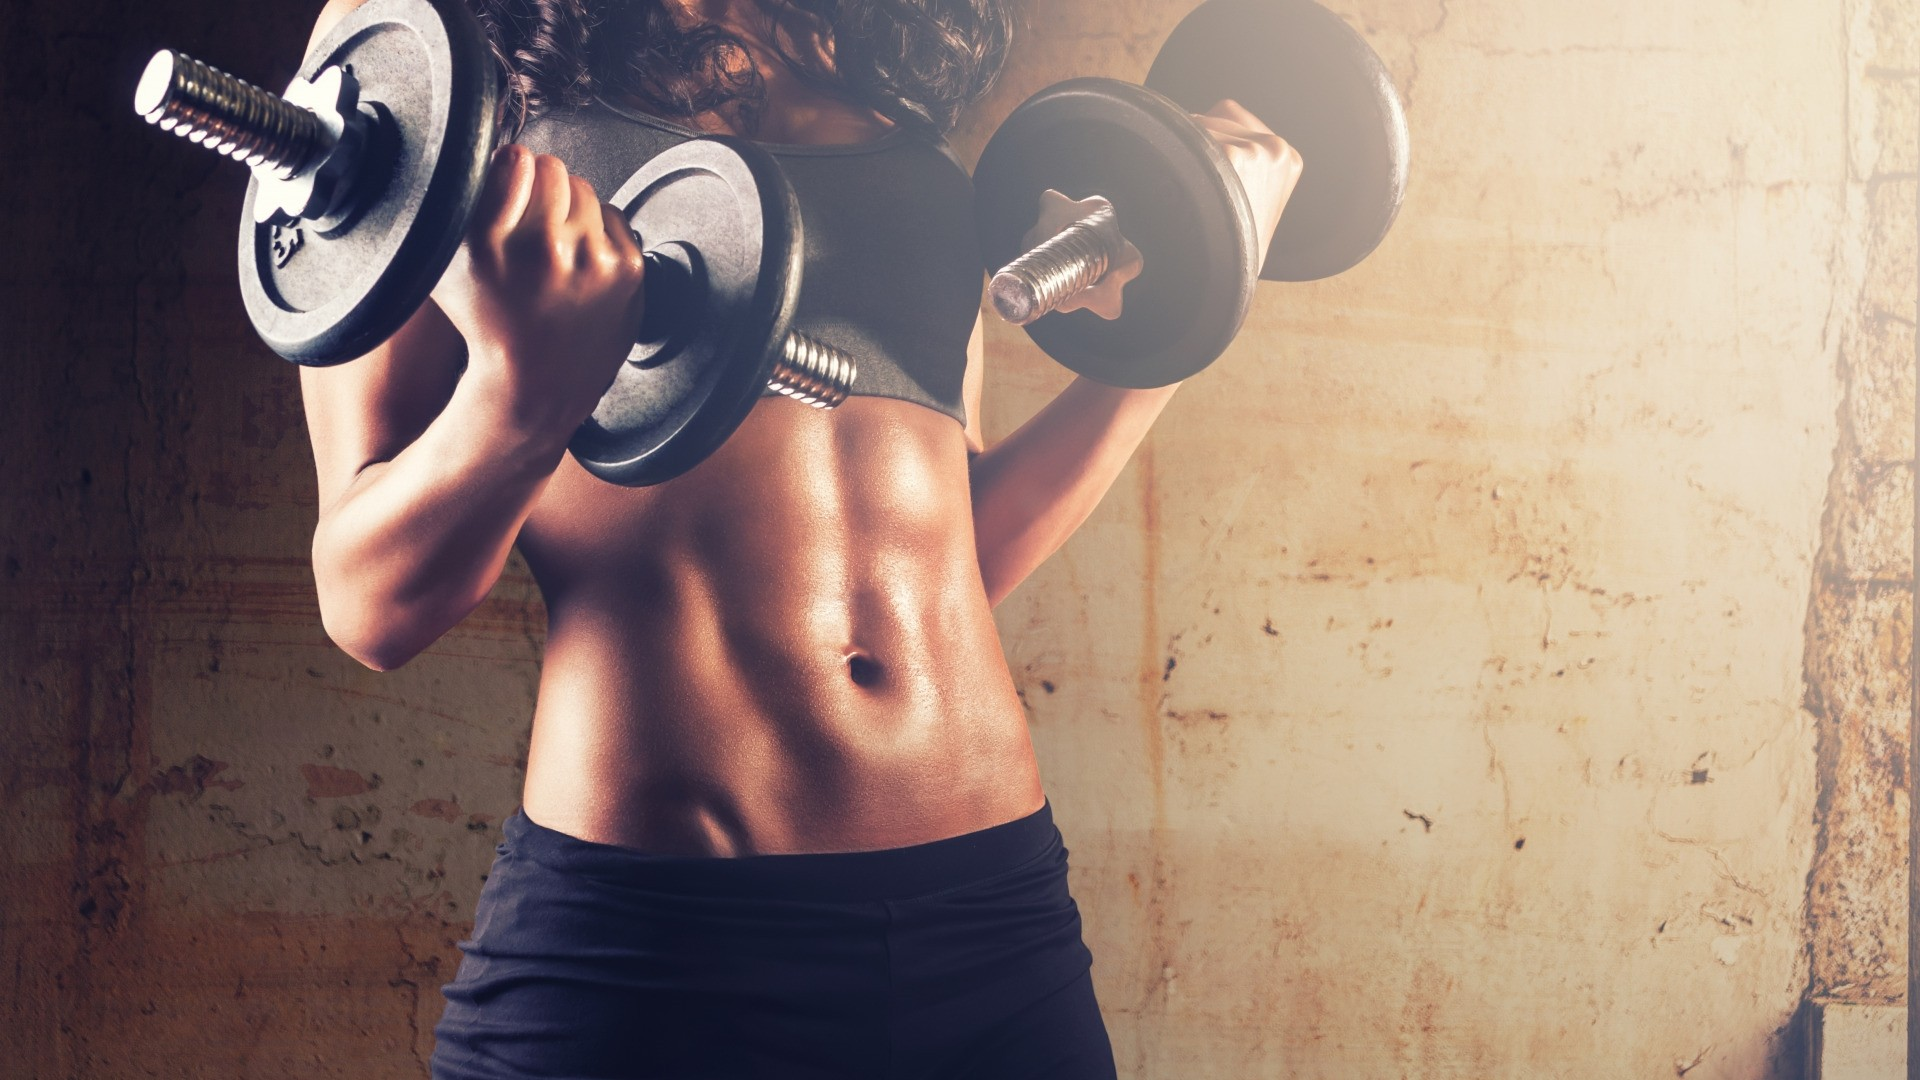 Fitness Free Wallpaper and Background